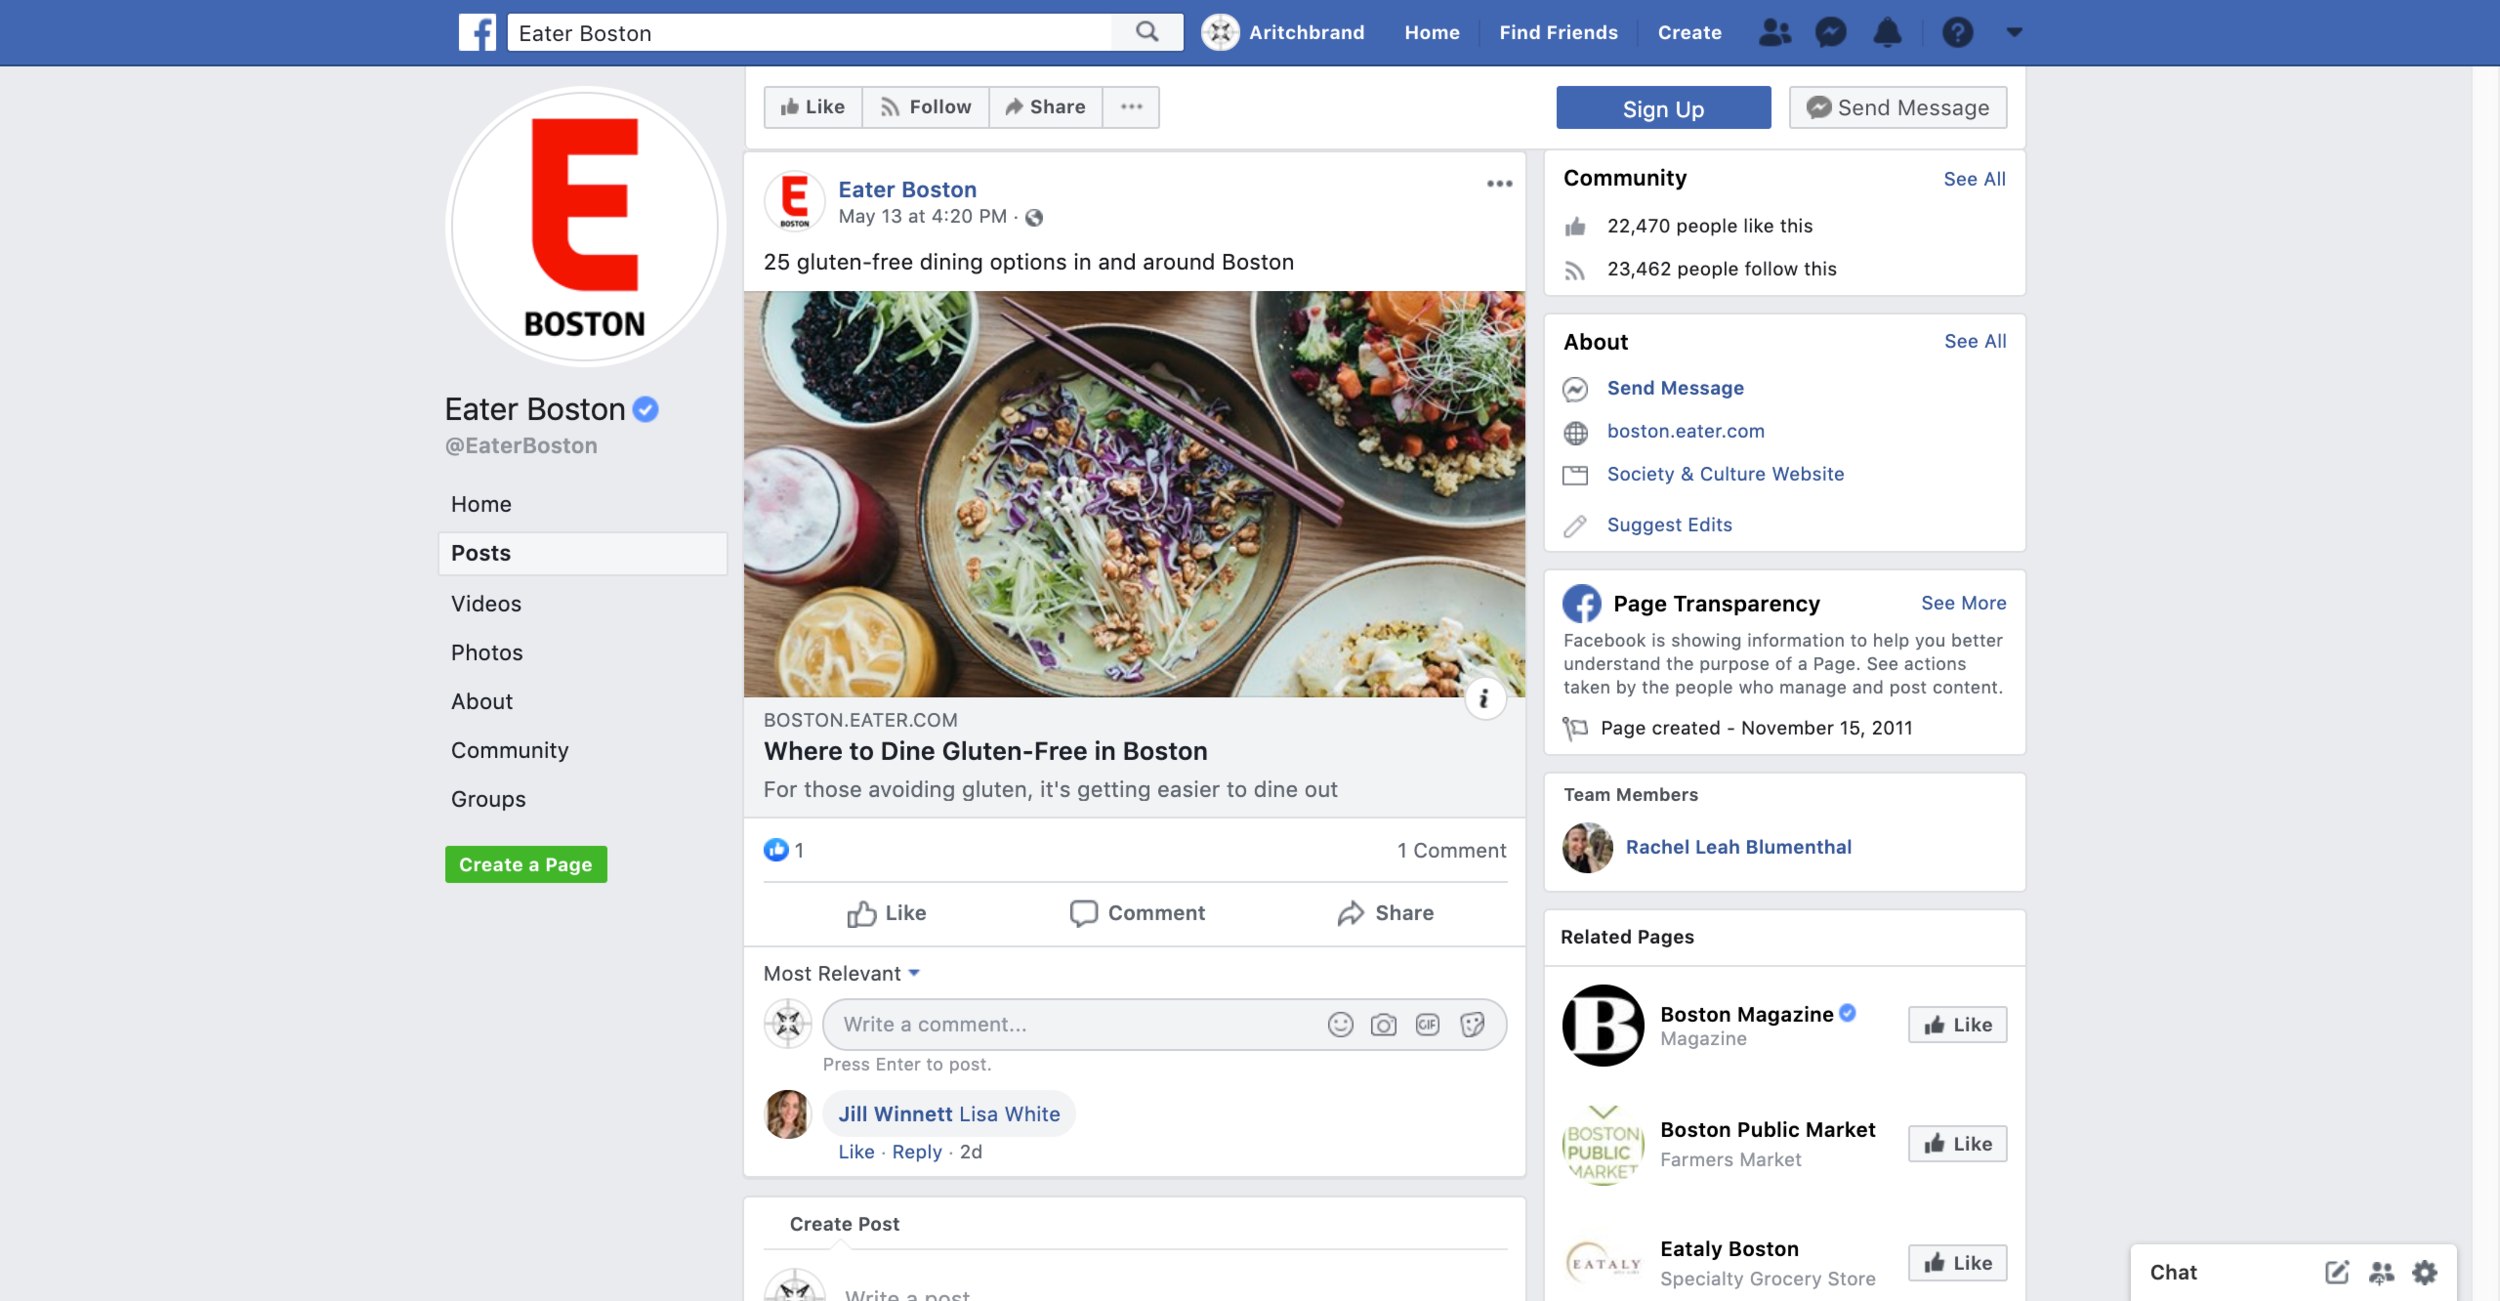 2019.05.13_Eater Boston, Facebook_Life Alive All + Back Bay.png